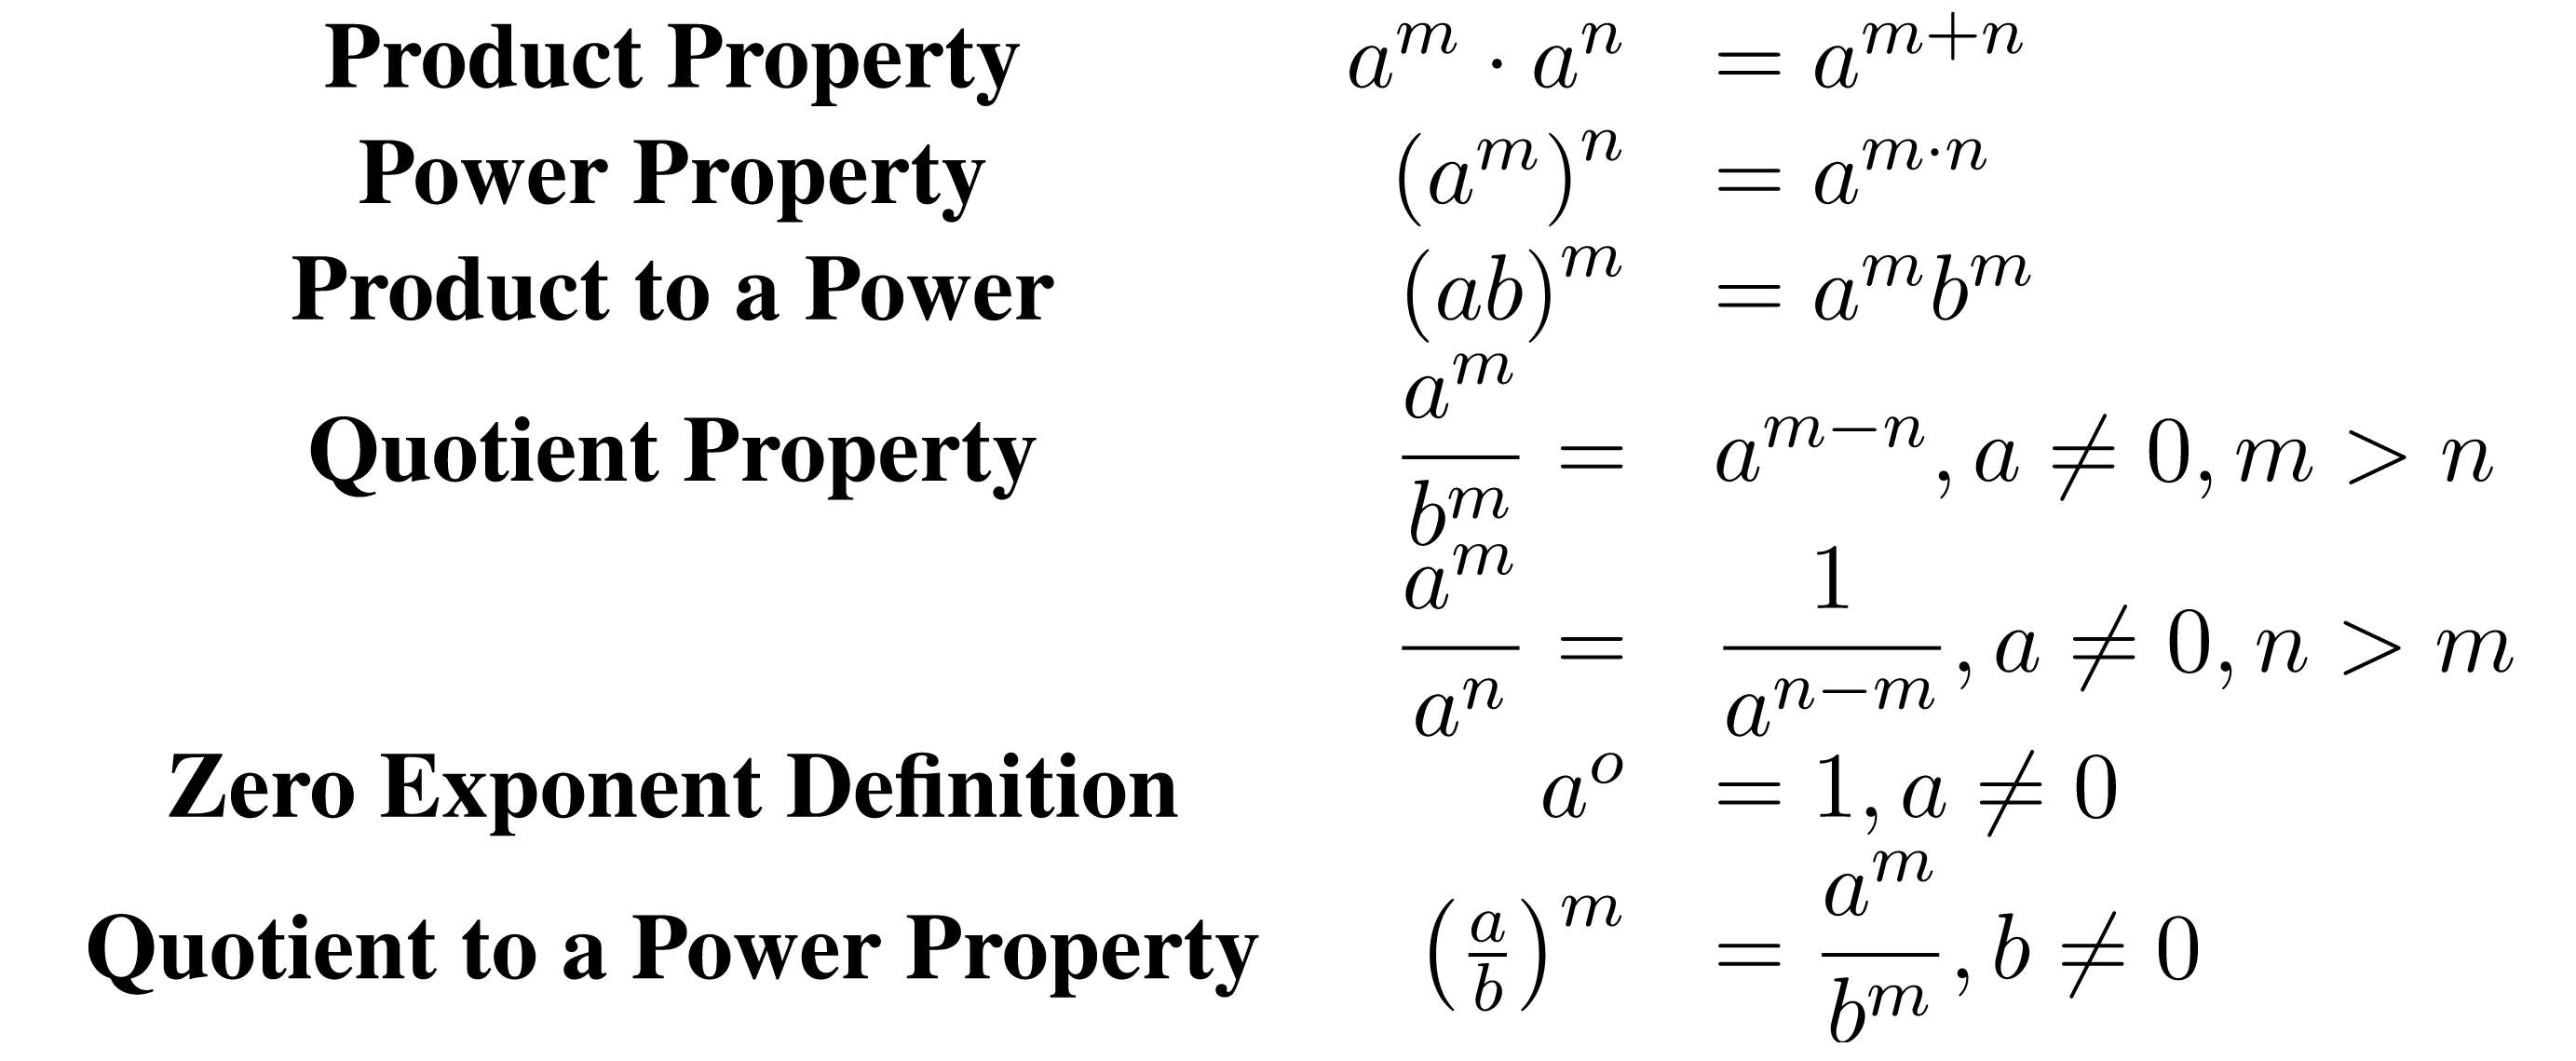 Summary of Product, Power, Product to a Power, Quotient, Zero Exponent Definition, and Quotient to a Power Properties.